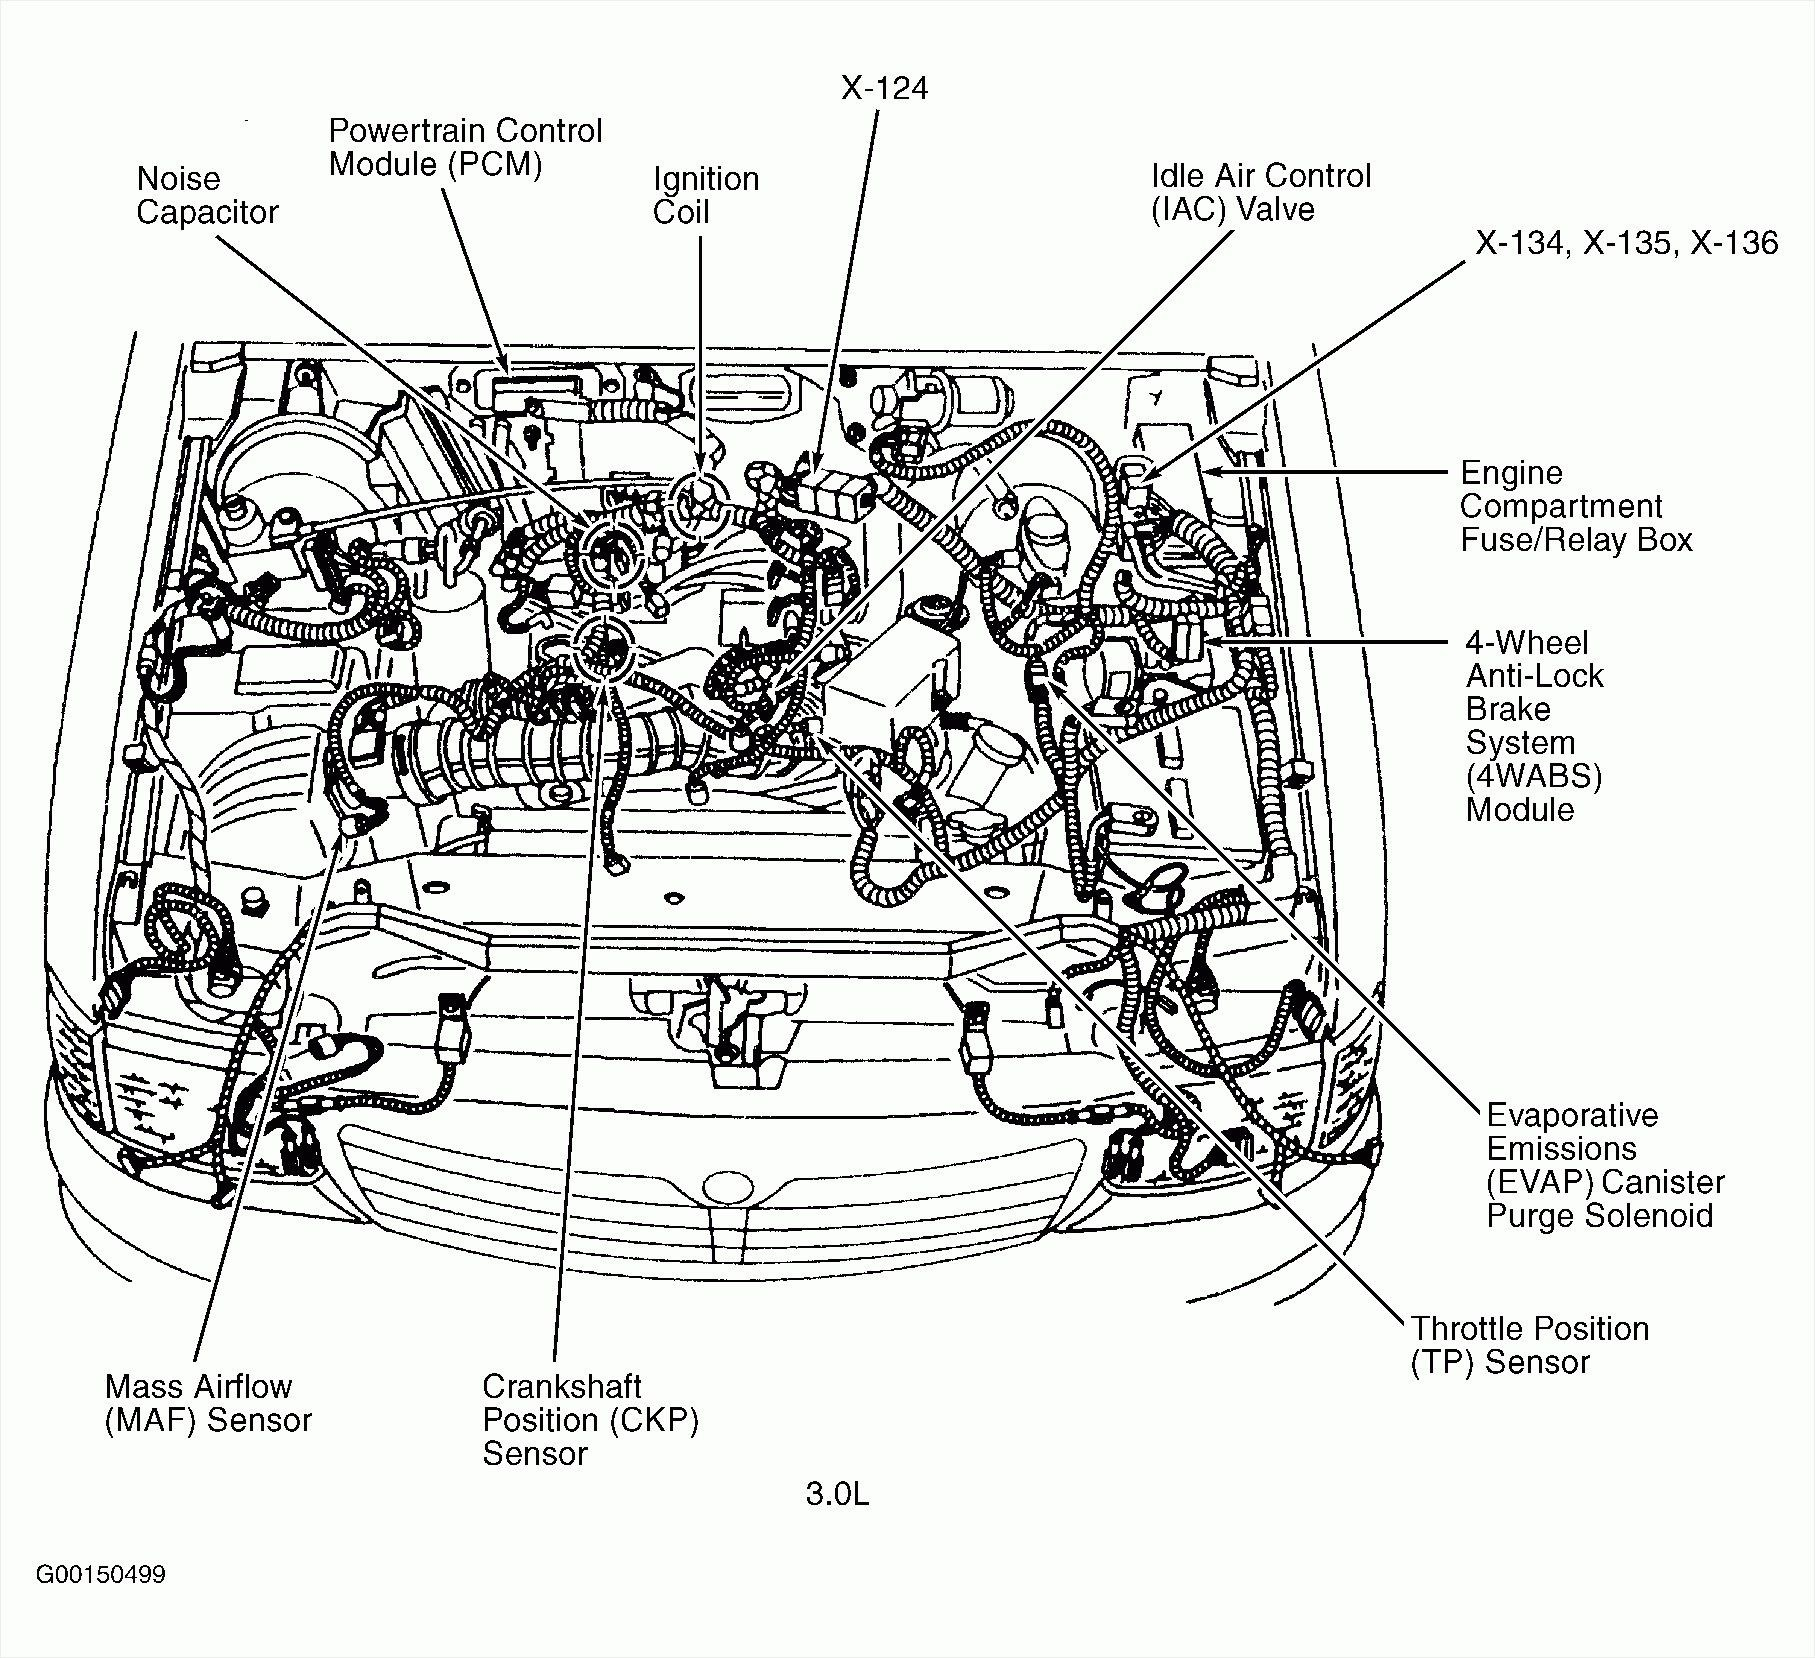 2006 Volkswagen Beetle Engine Diagram - Wiring Diagram Data please-railroad  - please-railroad.portorhoca.itplease-railroad.portorhoca.it